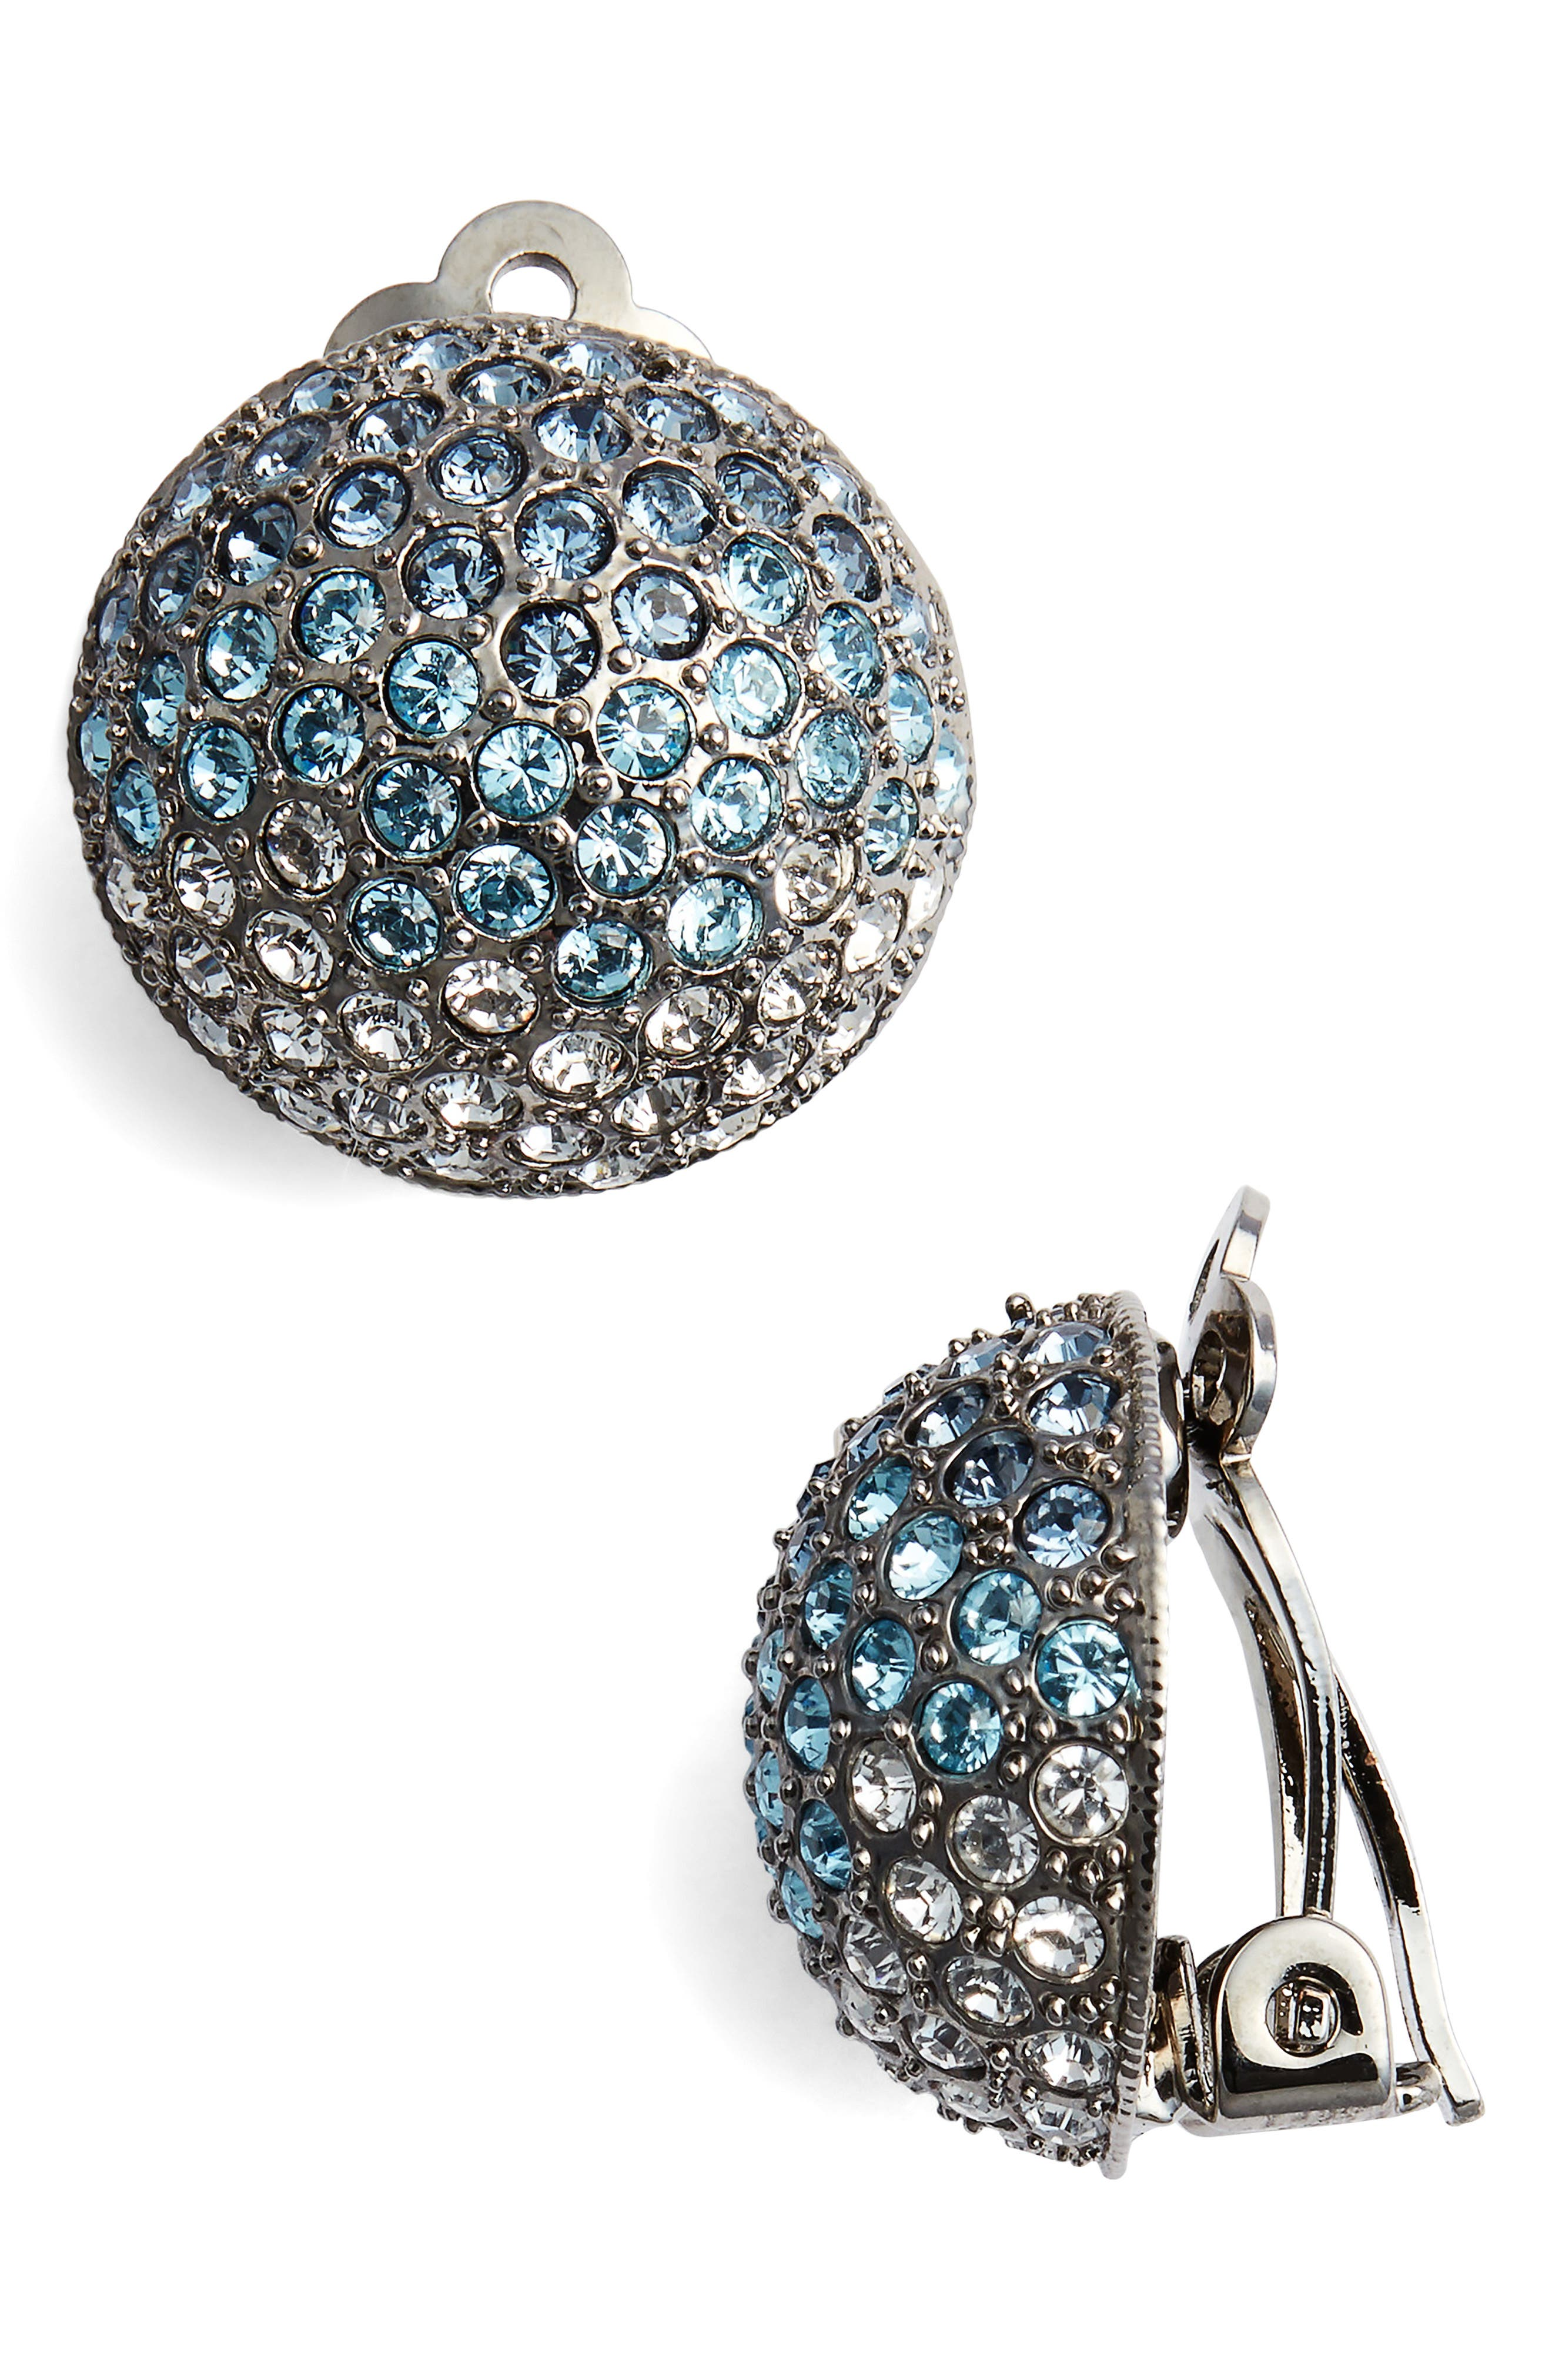 Medium Pavé Button Clip Earrings,                             Main thumbnail 1, color,                             Black/ Ombre Denim Blue Multi